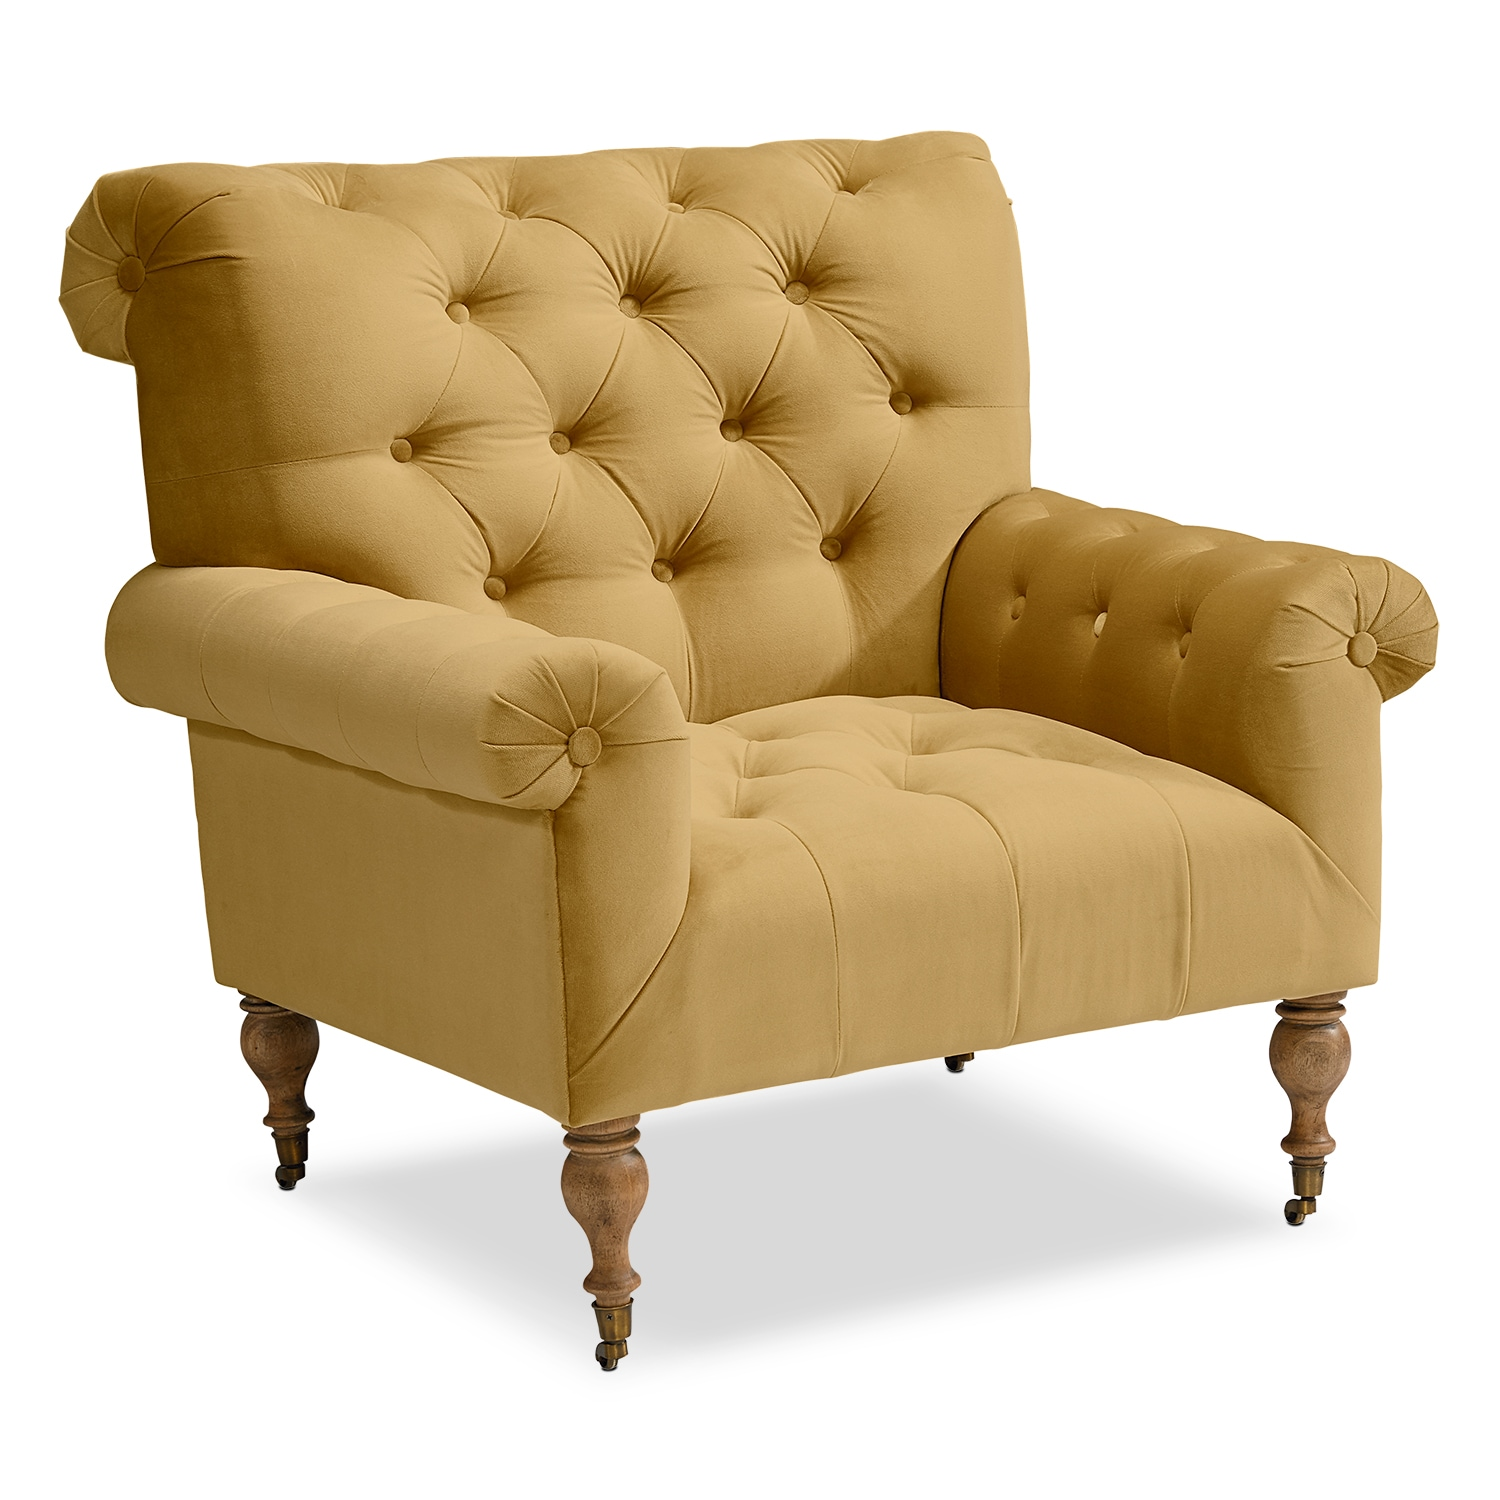 Living Room Furniture - Carpe Diem Accent Chair - Medallion